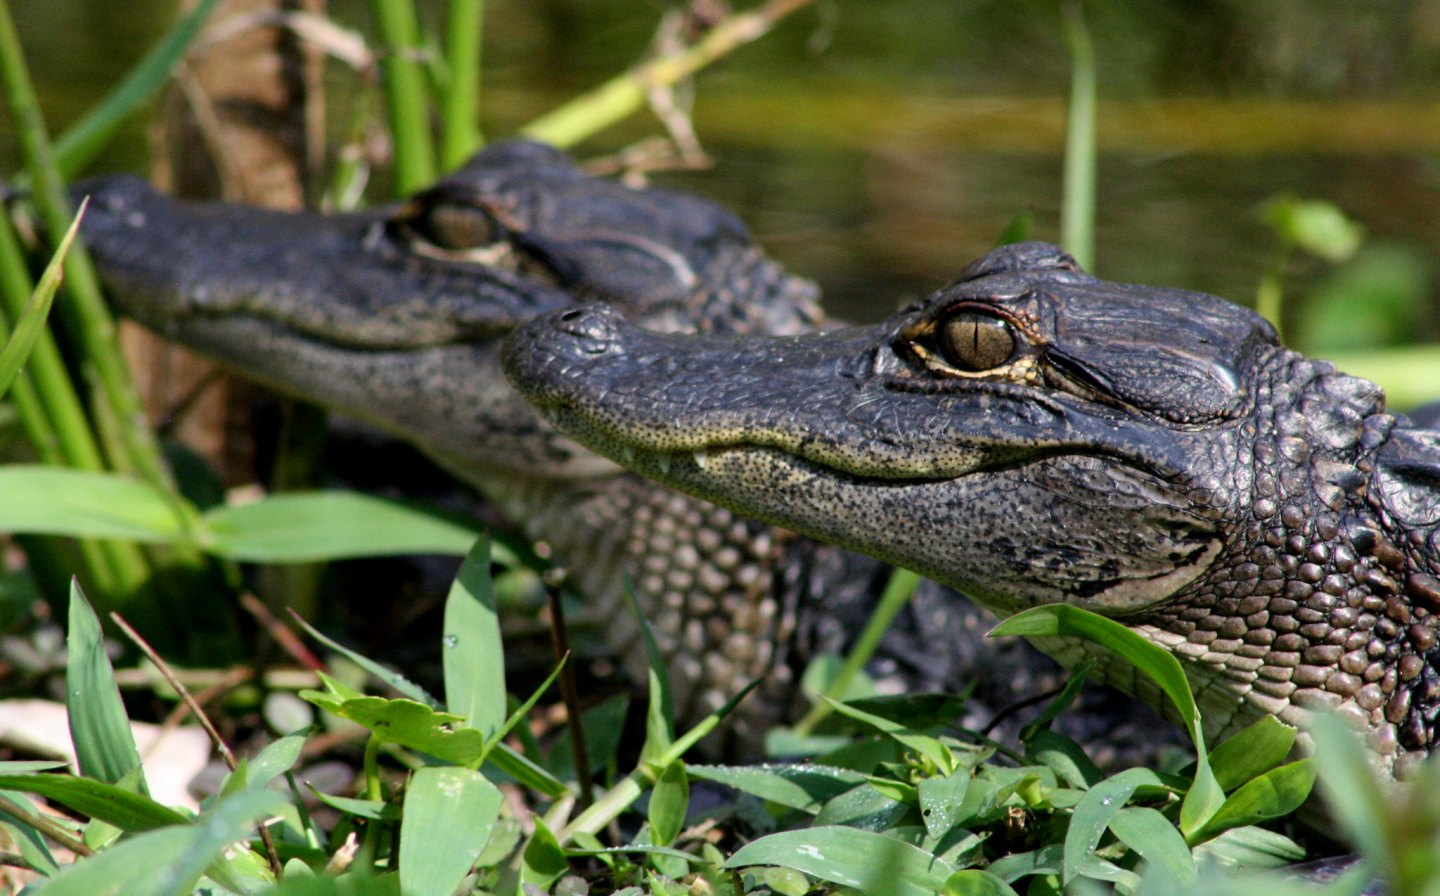 A pair of little alligators